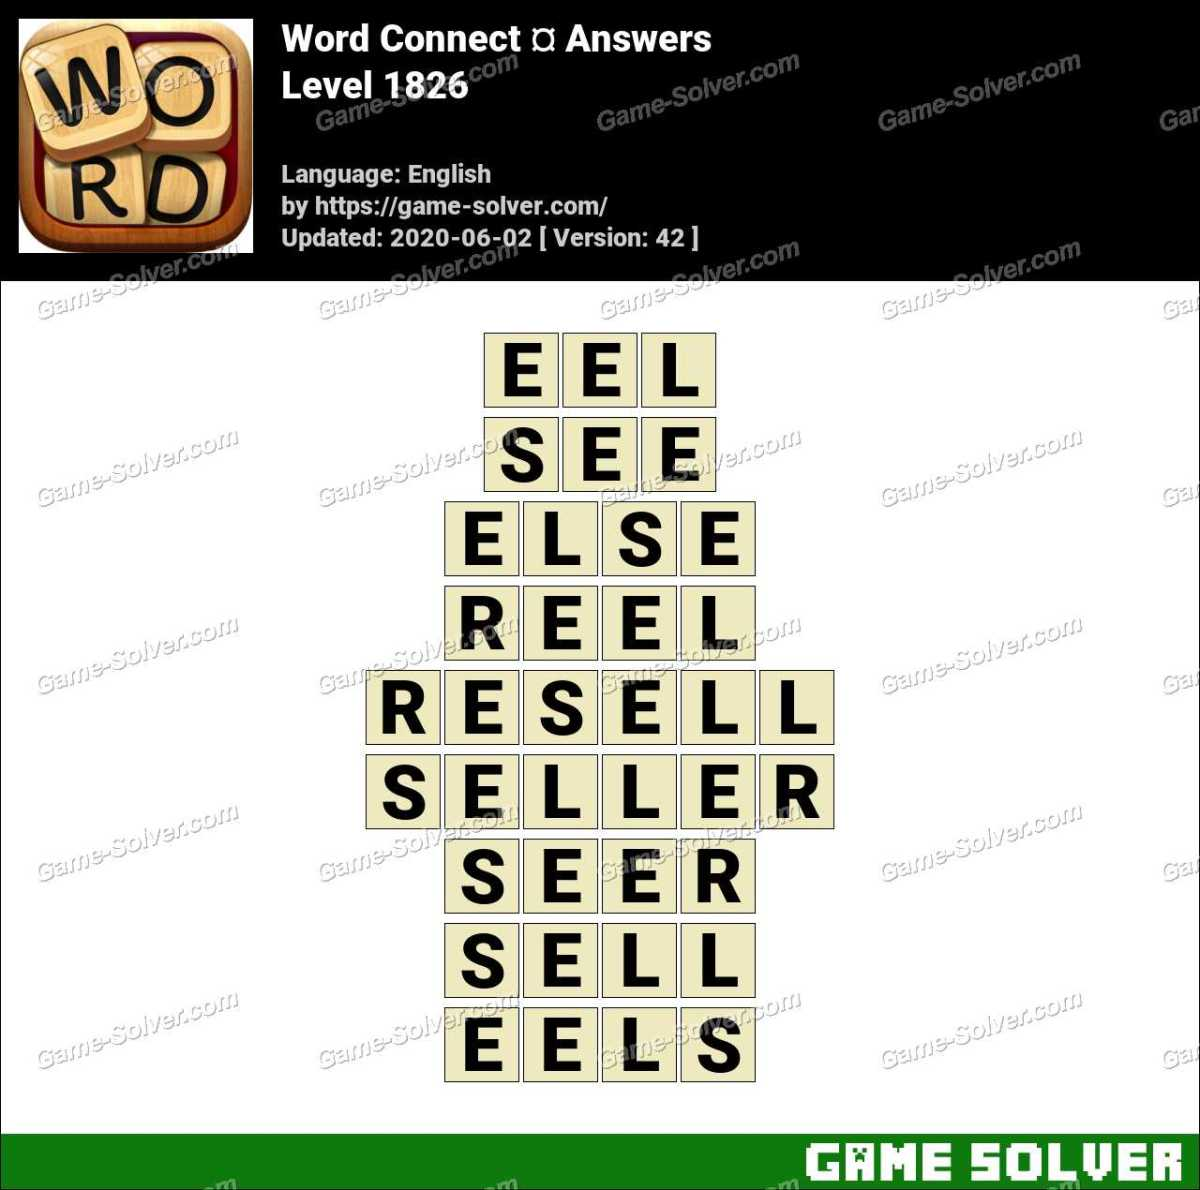 Word Connect Level 1826 Answers